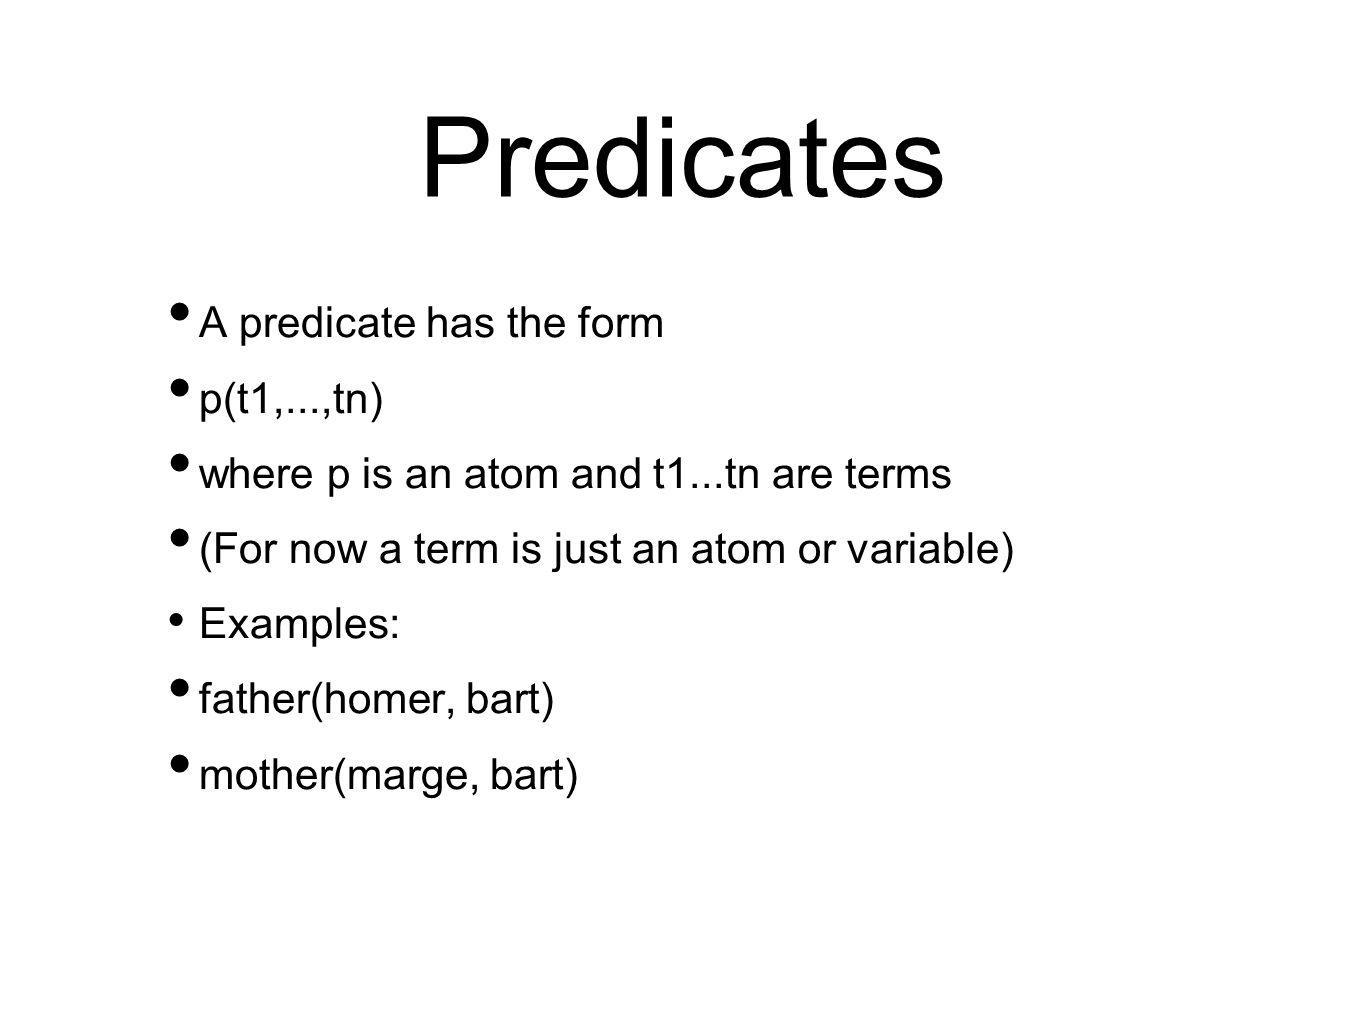 Predicates A predicate has the form p(t1,...,tn) where p is an atom and t1...tn are terms (For now a term is just an atom or variable) Examples: father(homer, bart) mother(marge, bart)